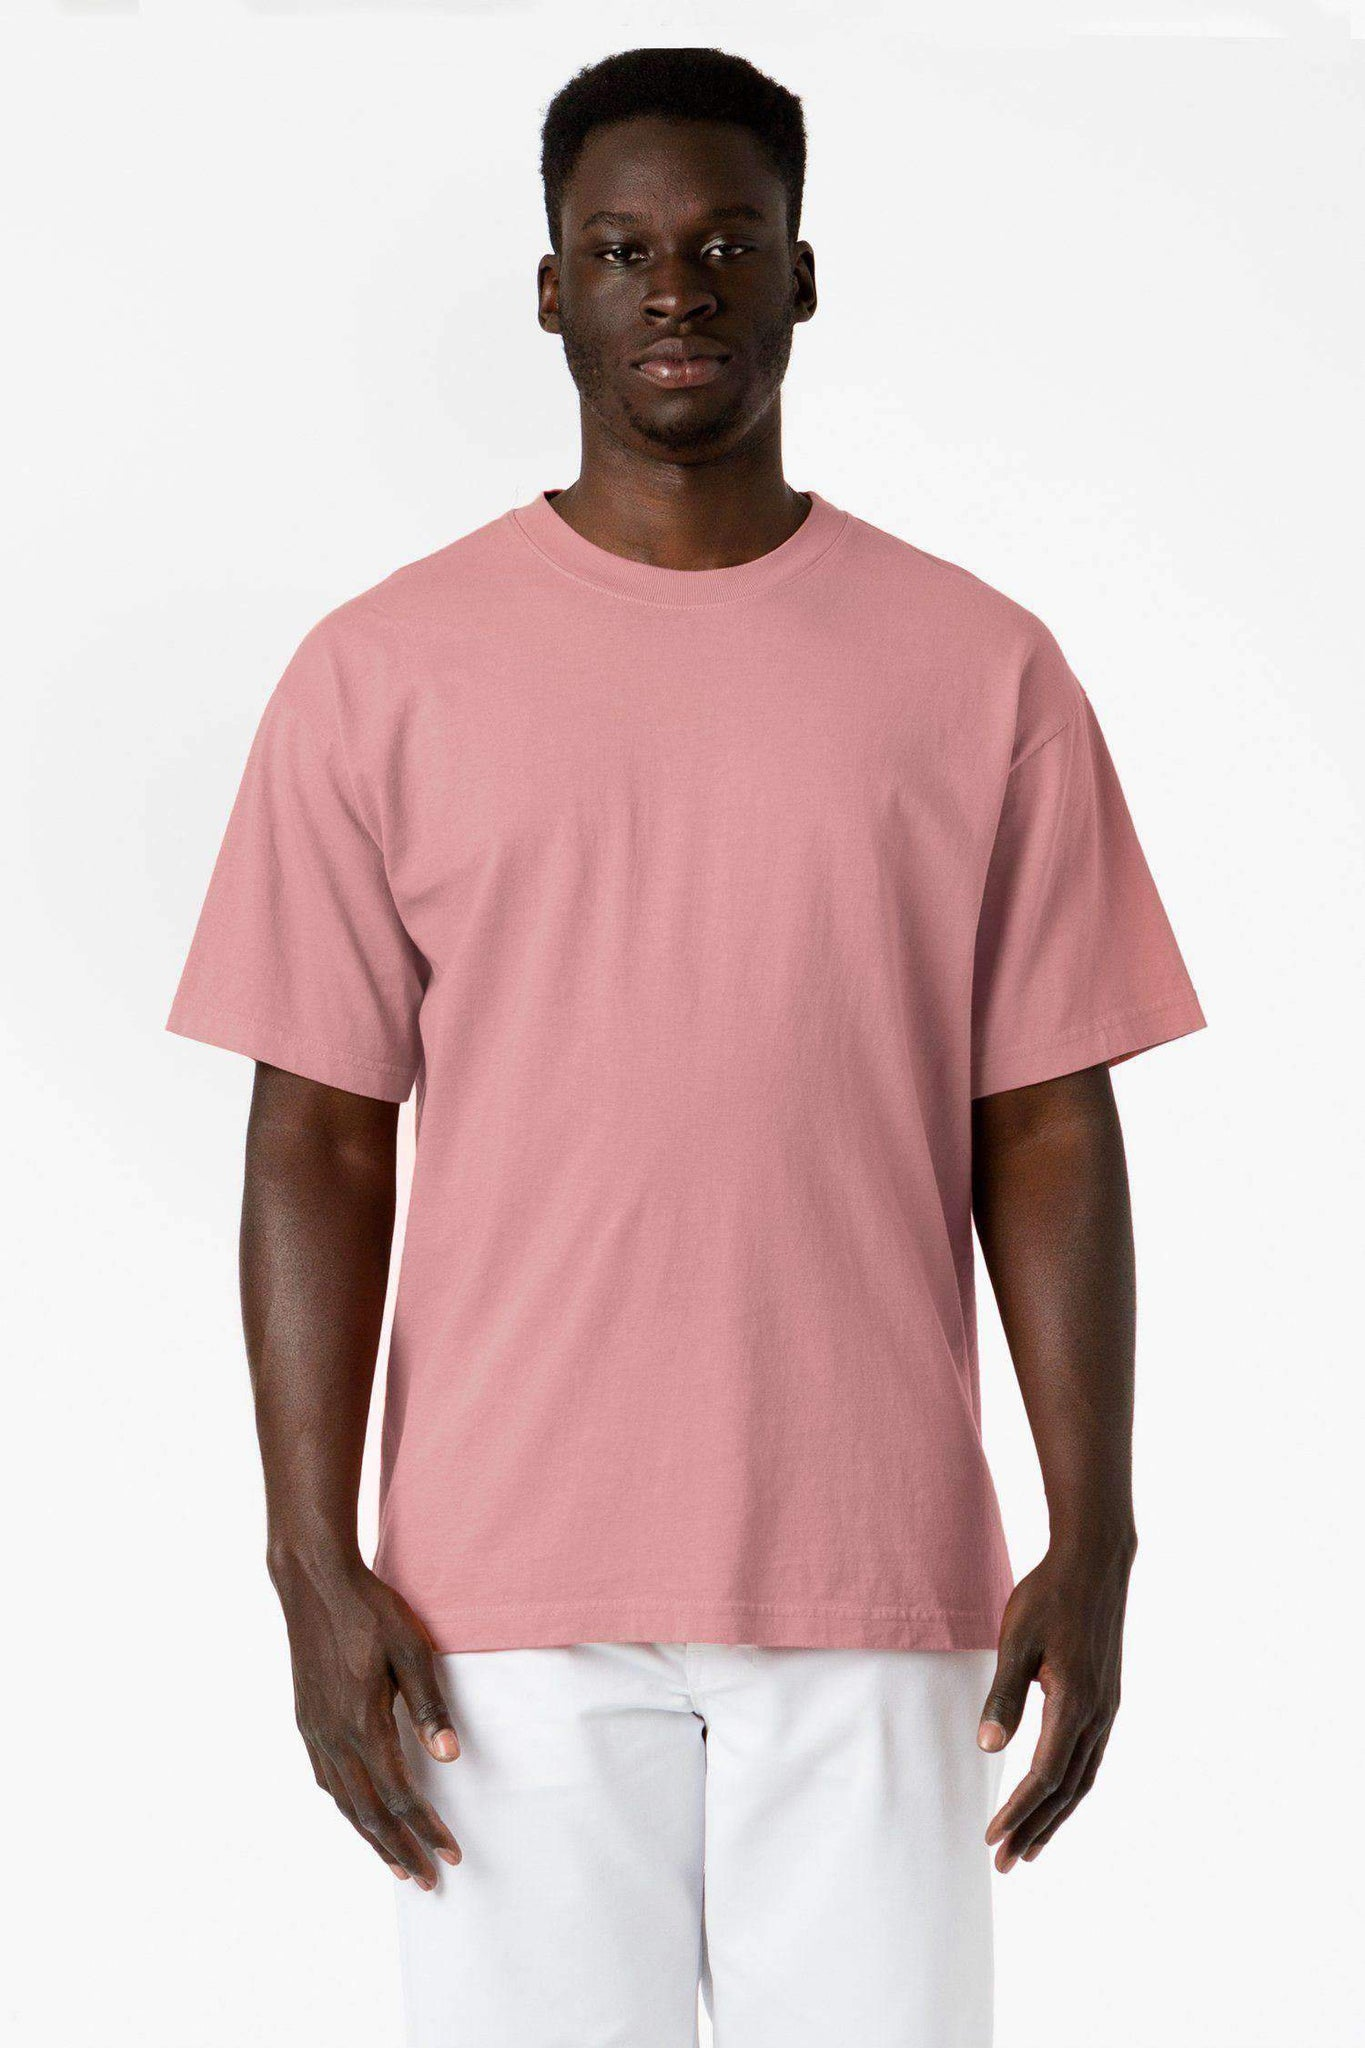 1801GD - 6.5oz Garment Dye Pastel Crew Neck T-Shirt T-Shirt Los Angeles Apparel Coral S